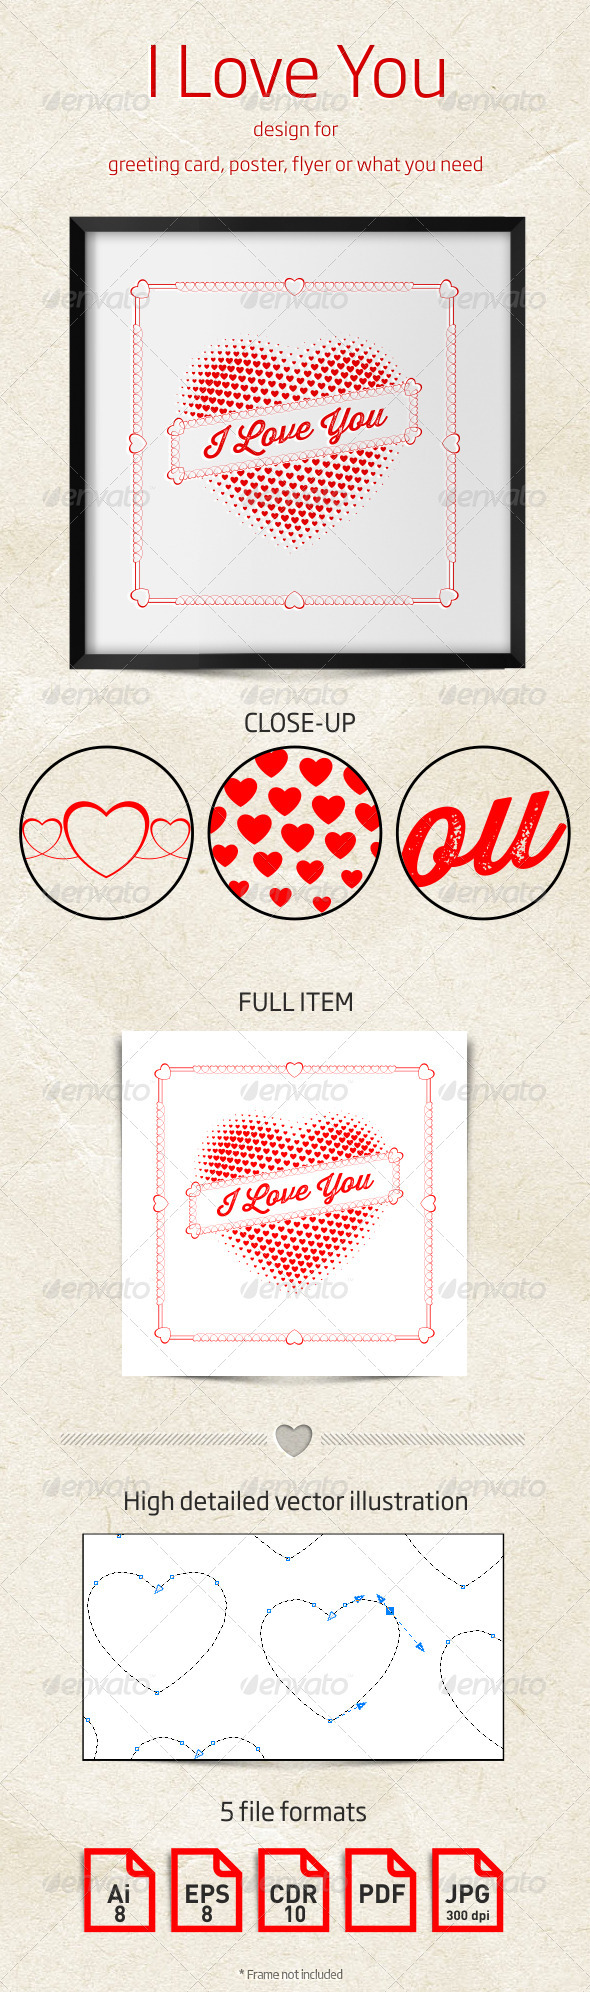 GraphicRiver I Love You Design for Greeting Card or Poster 3952377